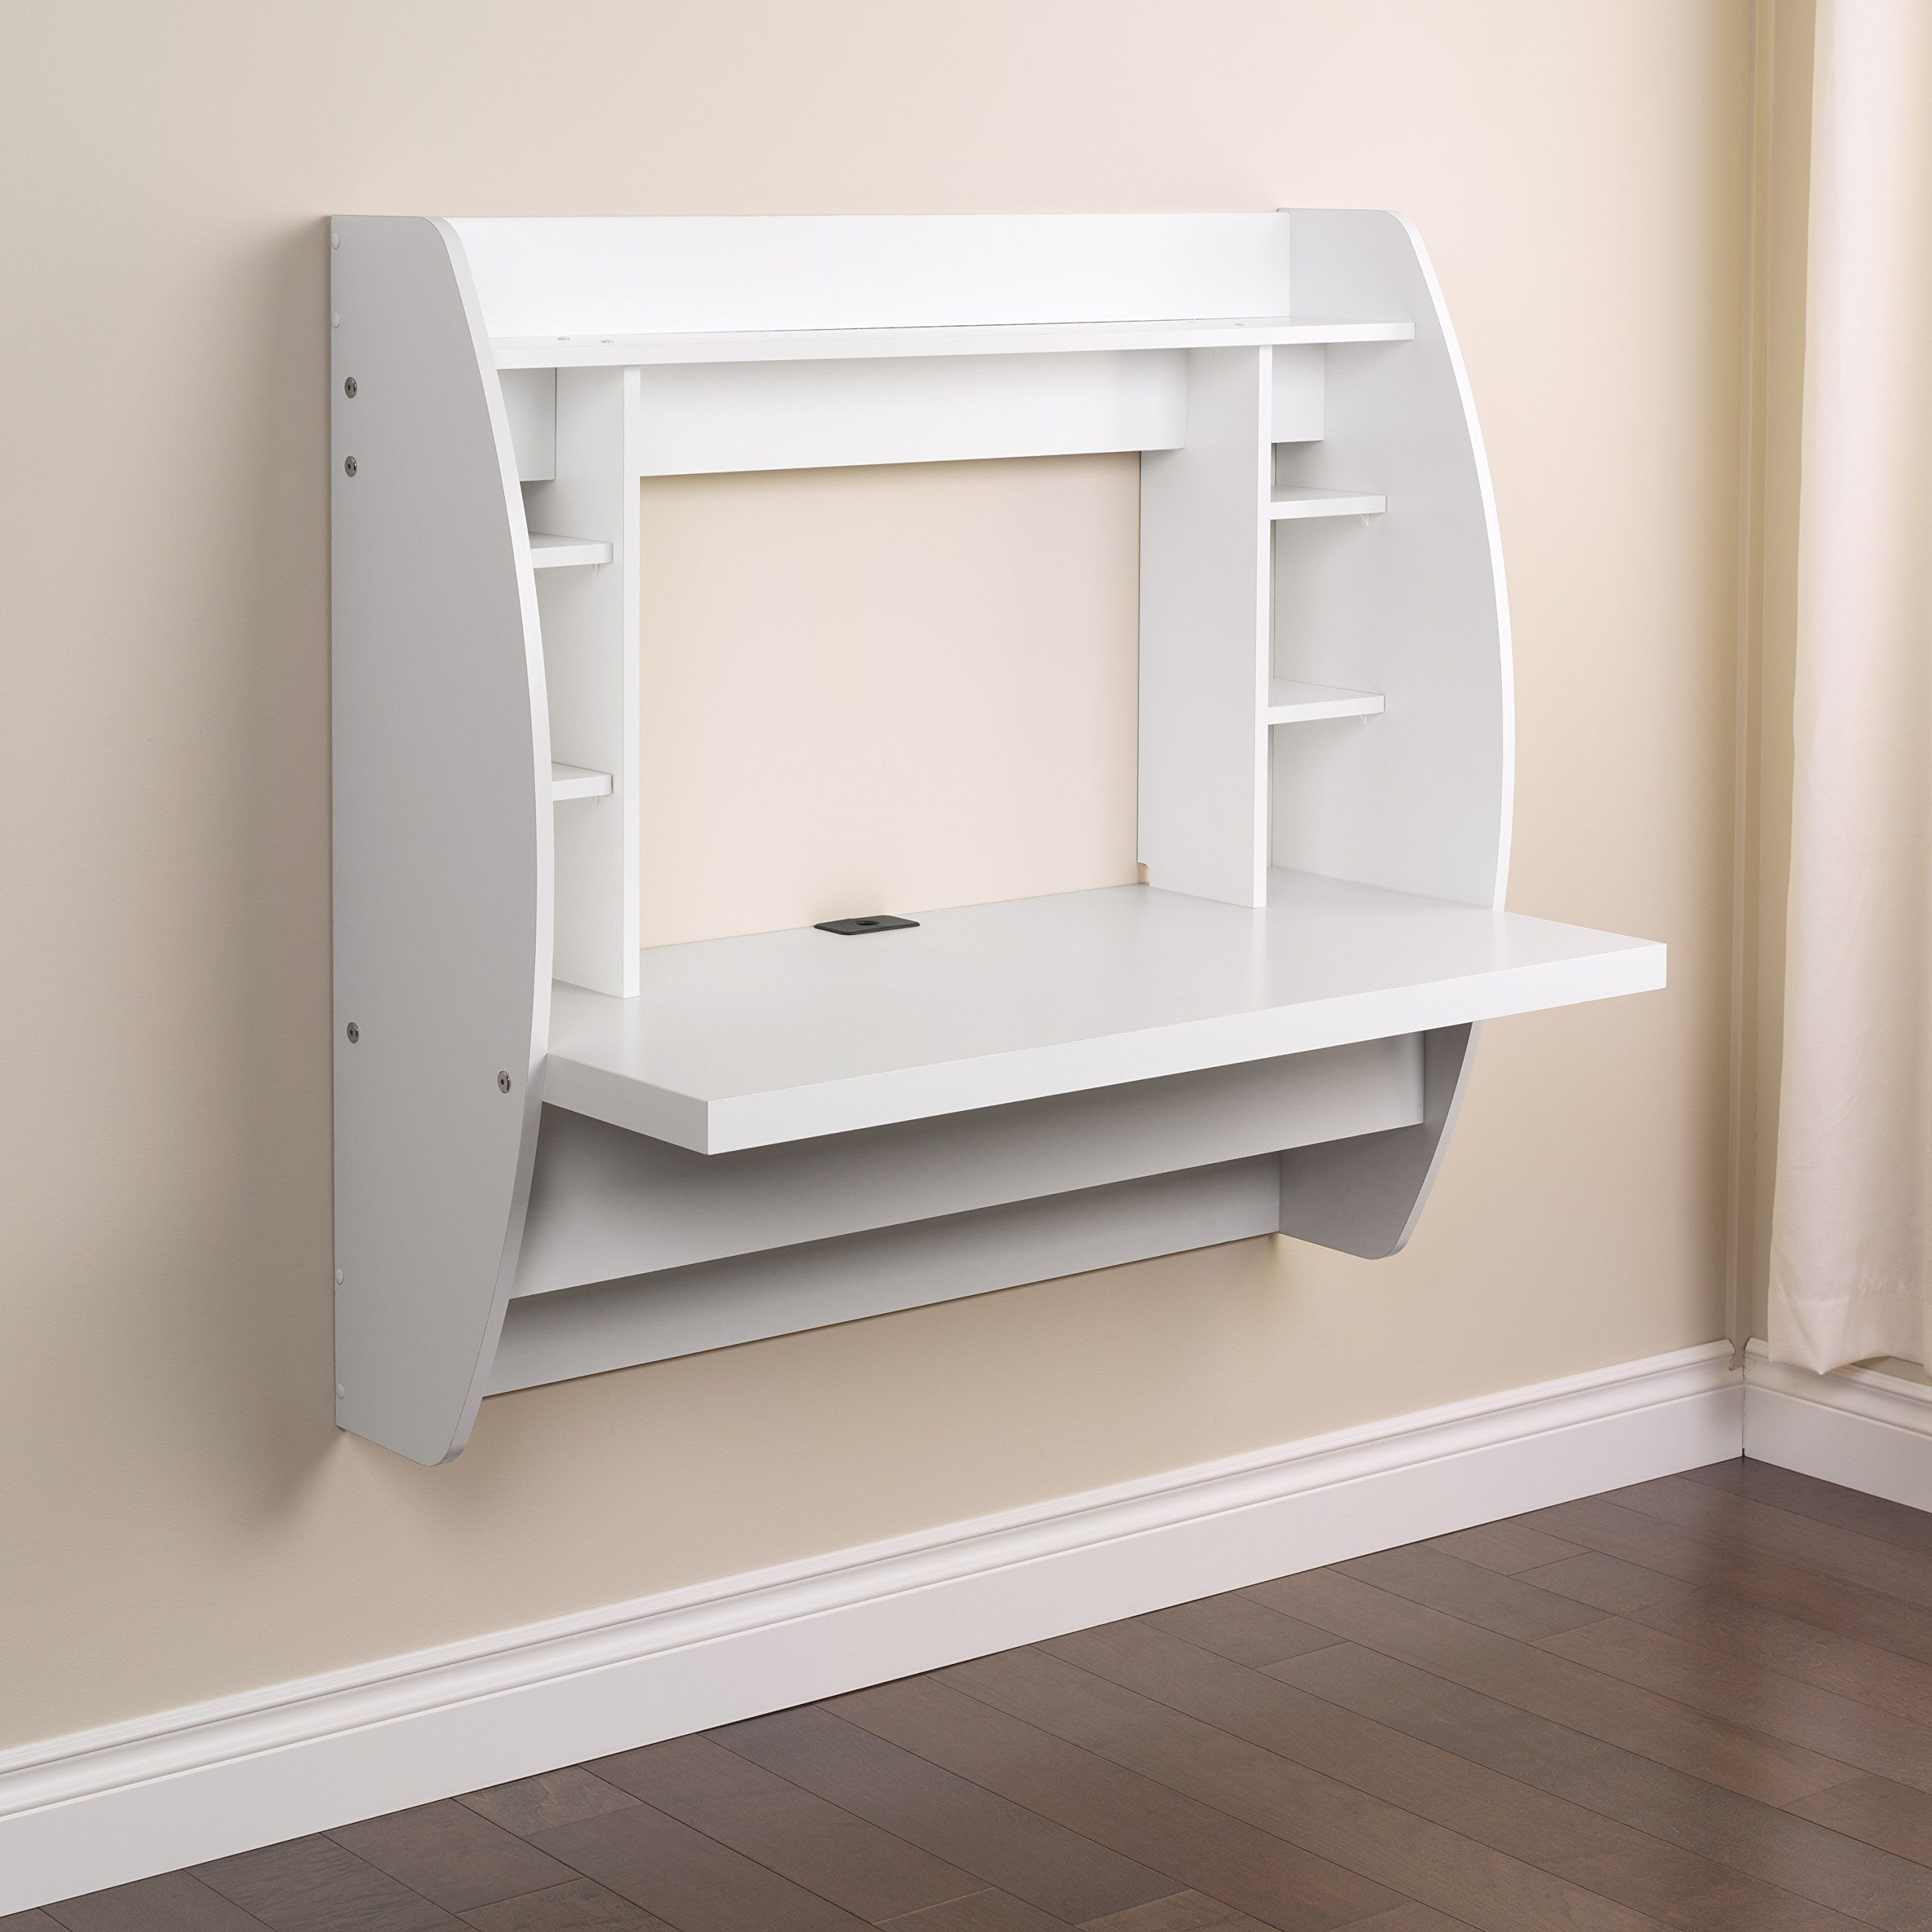 Prepac Wall Mounted Floating Desk With Storage In White Floating Desk White Floating Desk Desk Storage